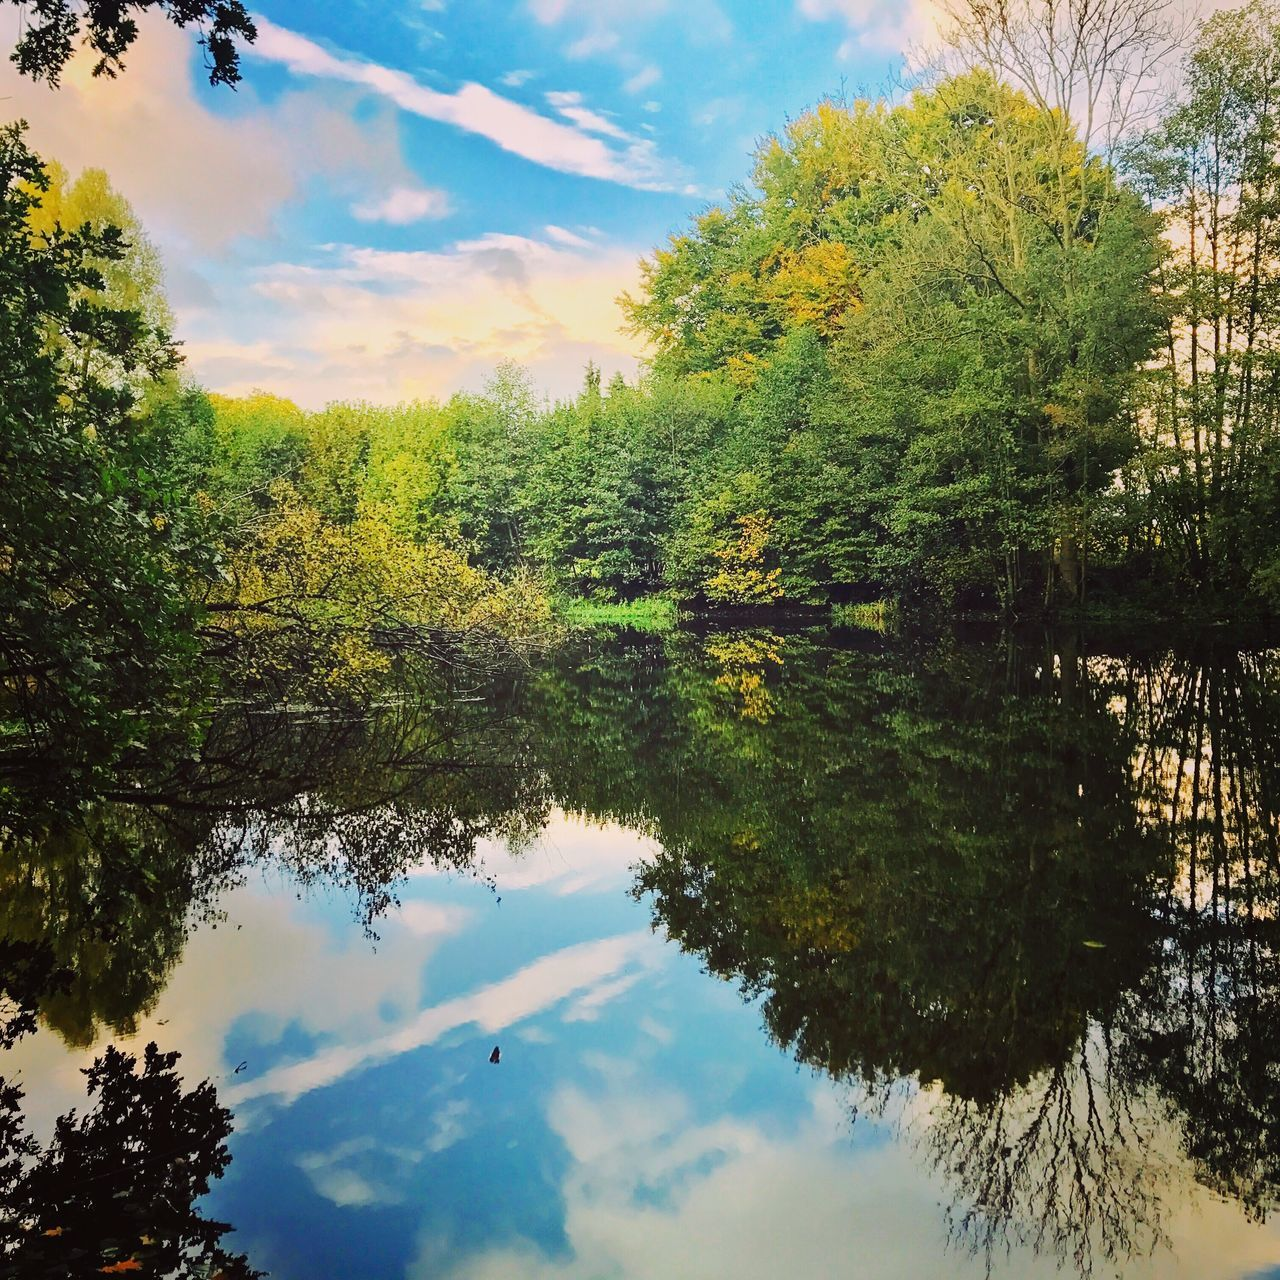 tree, sky, cloud - sky, nature, scenics, beauty in nature, reflection, tranquil scene, growth, no people, day, water, outdoors, tranquility, green color, low angle view